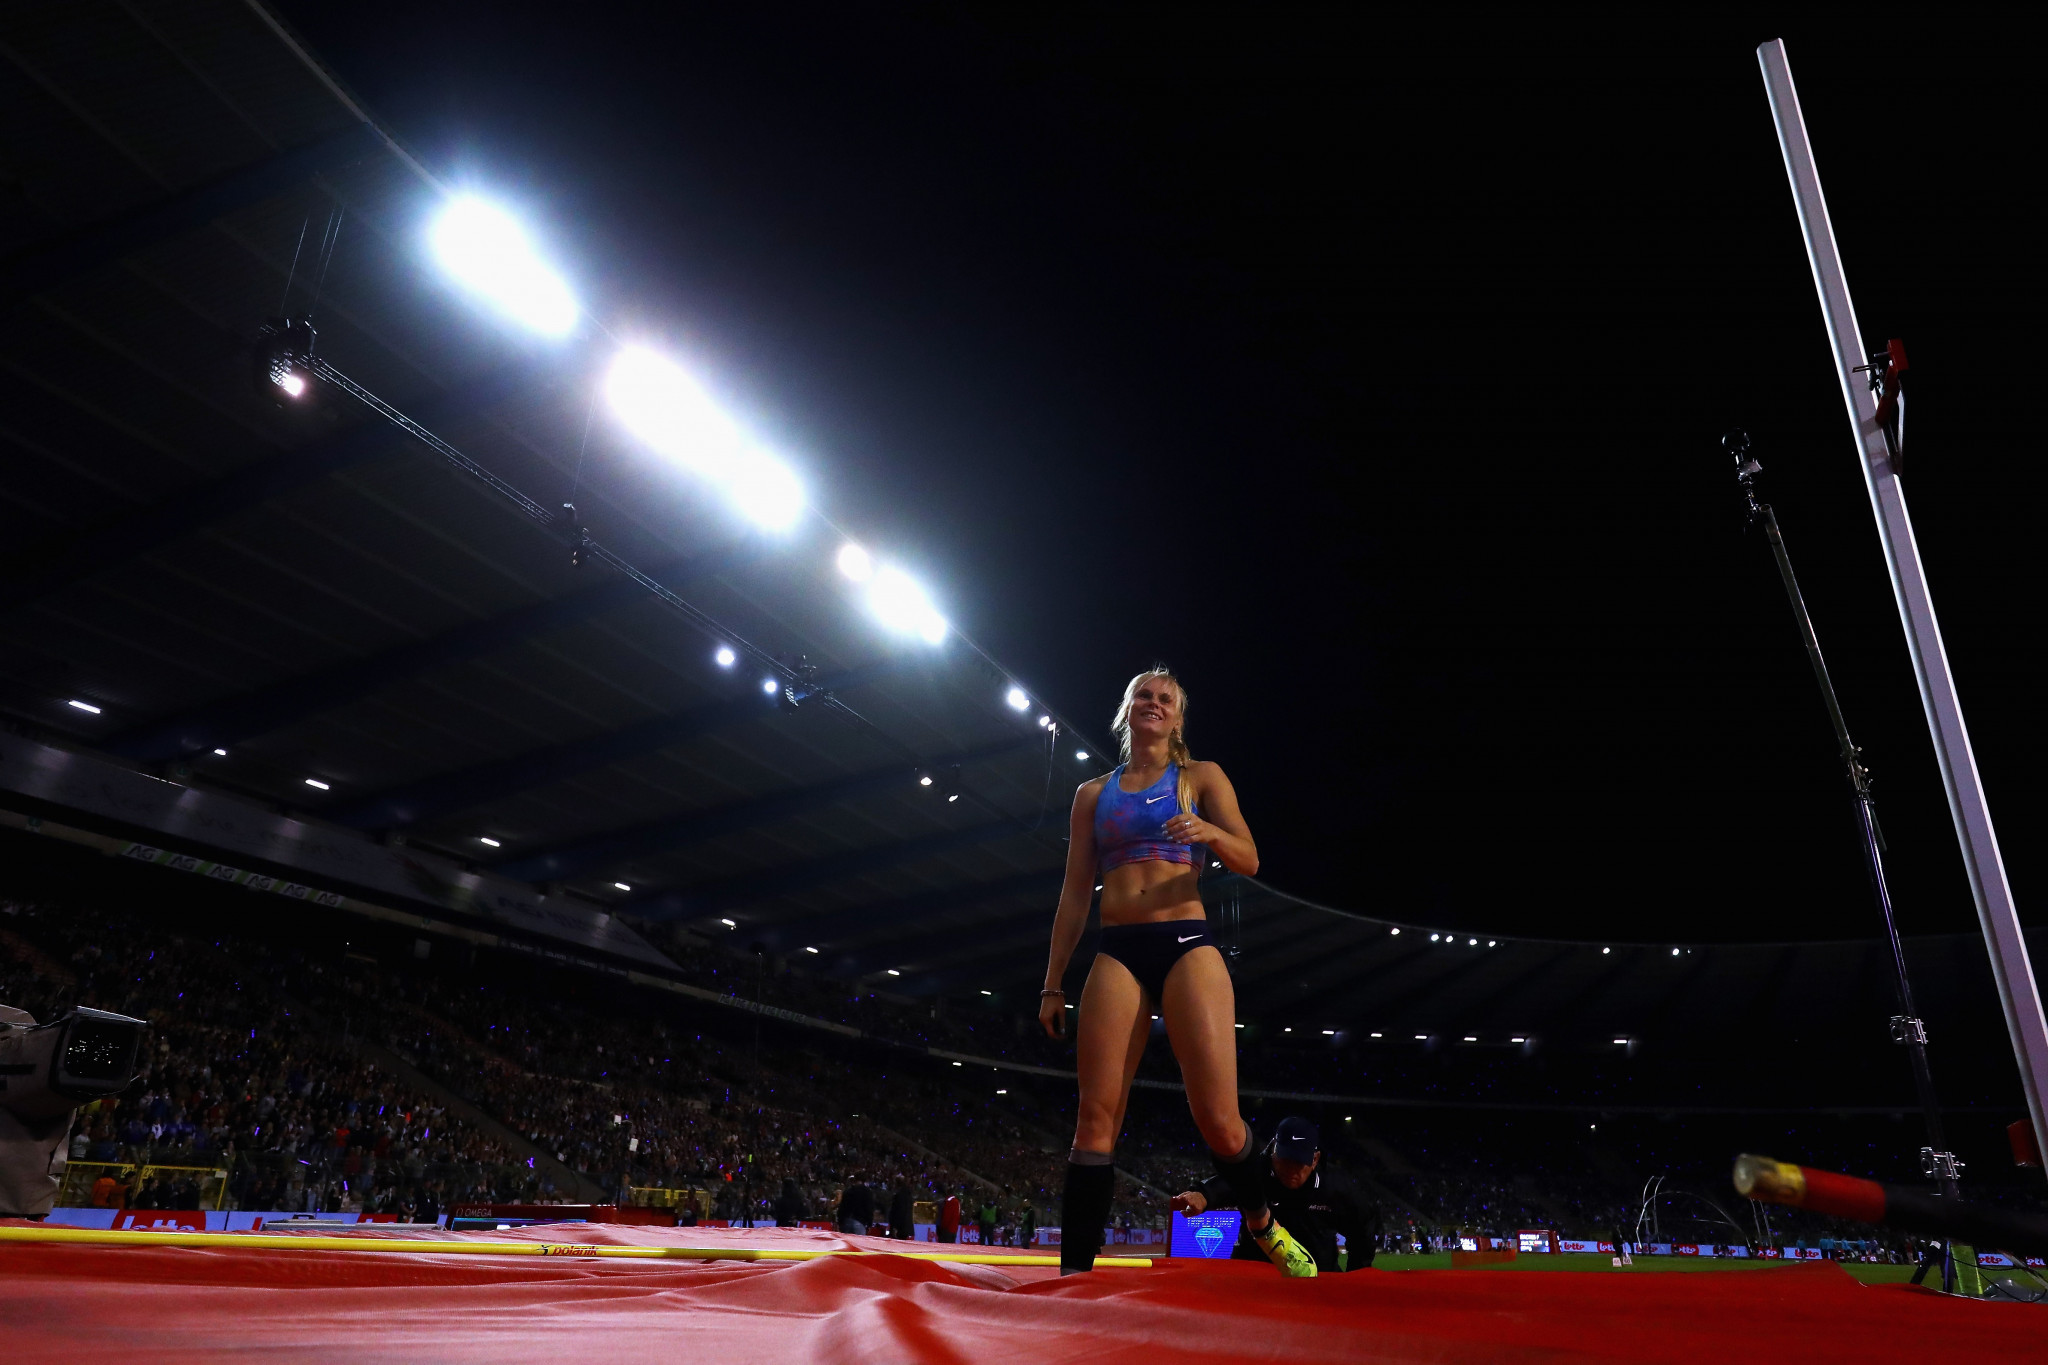 Brussels Diamond League meeting to be held without spectators